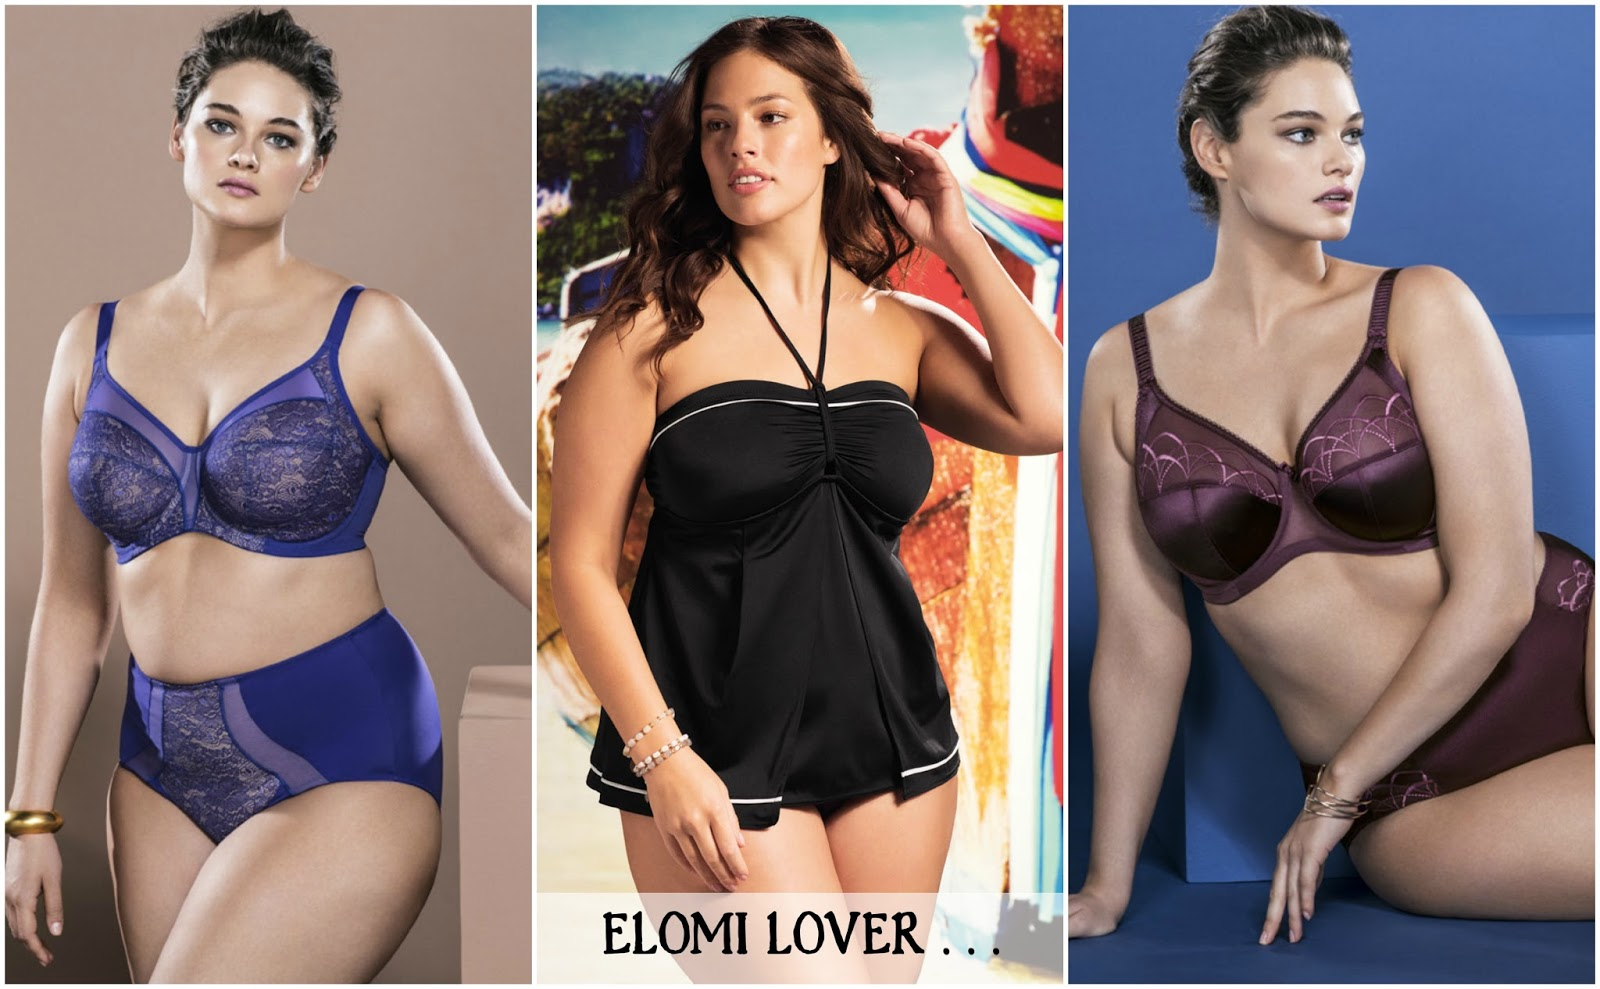 b1339665b95 Elomi Lingerie - Sheer confidence - soft indulgence - and with a new  swimwear collection. If you want plus size lingerie with unparalleled fit